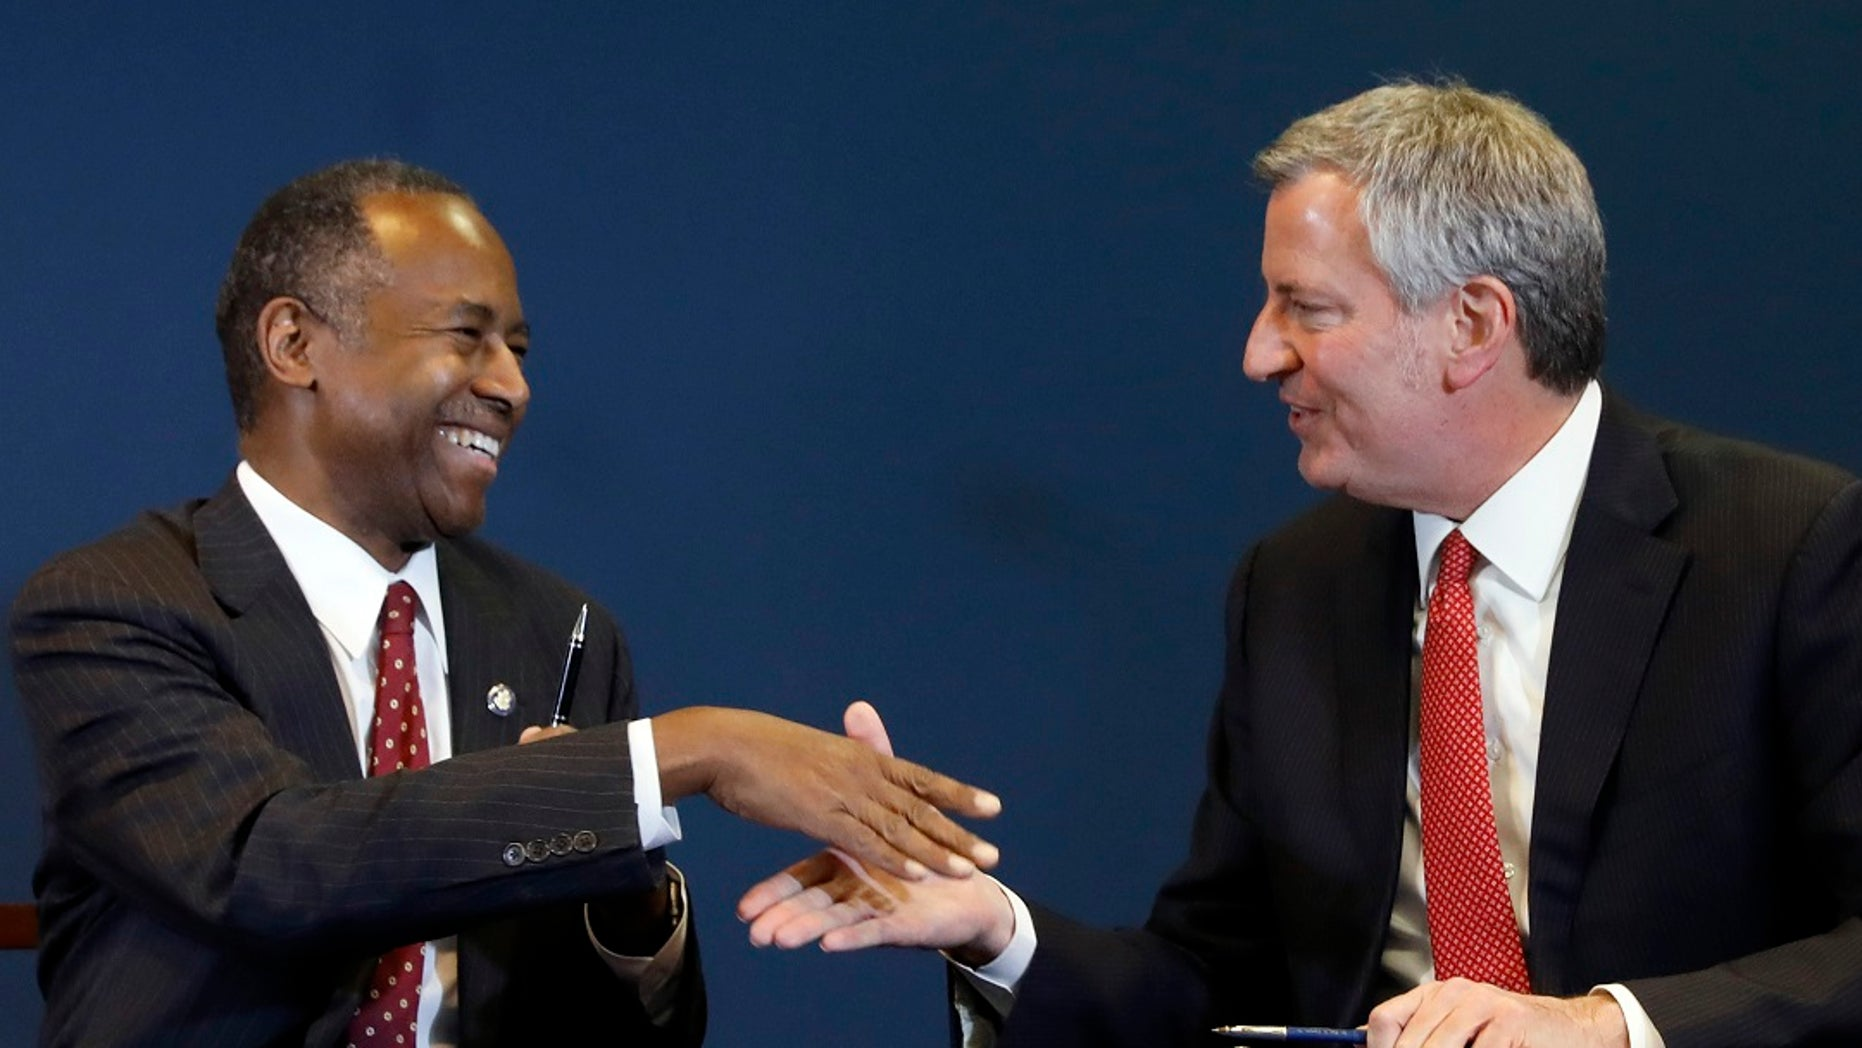 Housing and Urban Development Secretary Ben Carson, left, and New York Mayor Bill de Blasio shake hands after a ceremonial signing of an agreement for oversight of New York City's public housing system, in New York, Jan. 31, 2019. (Associated Press)